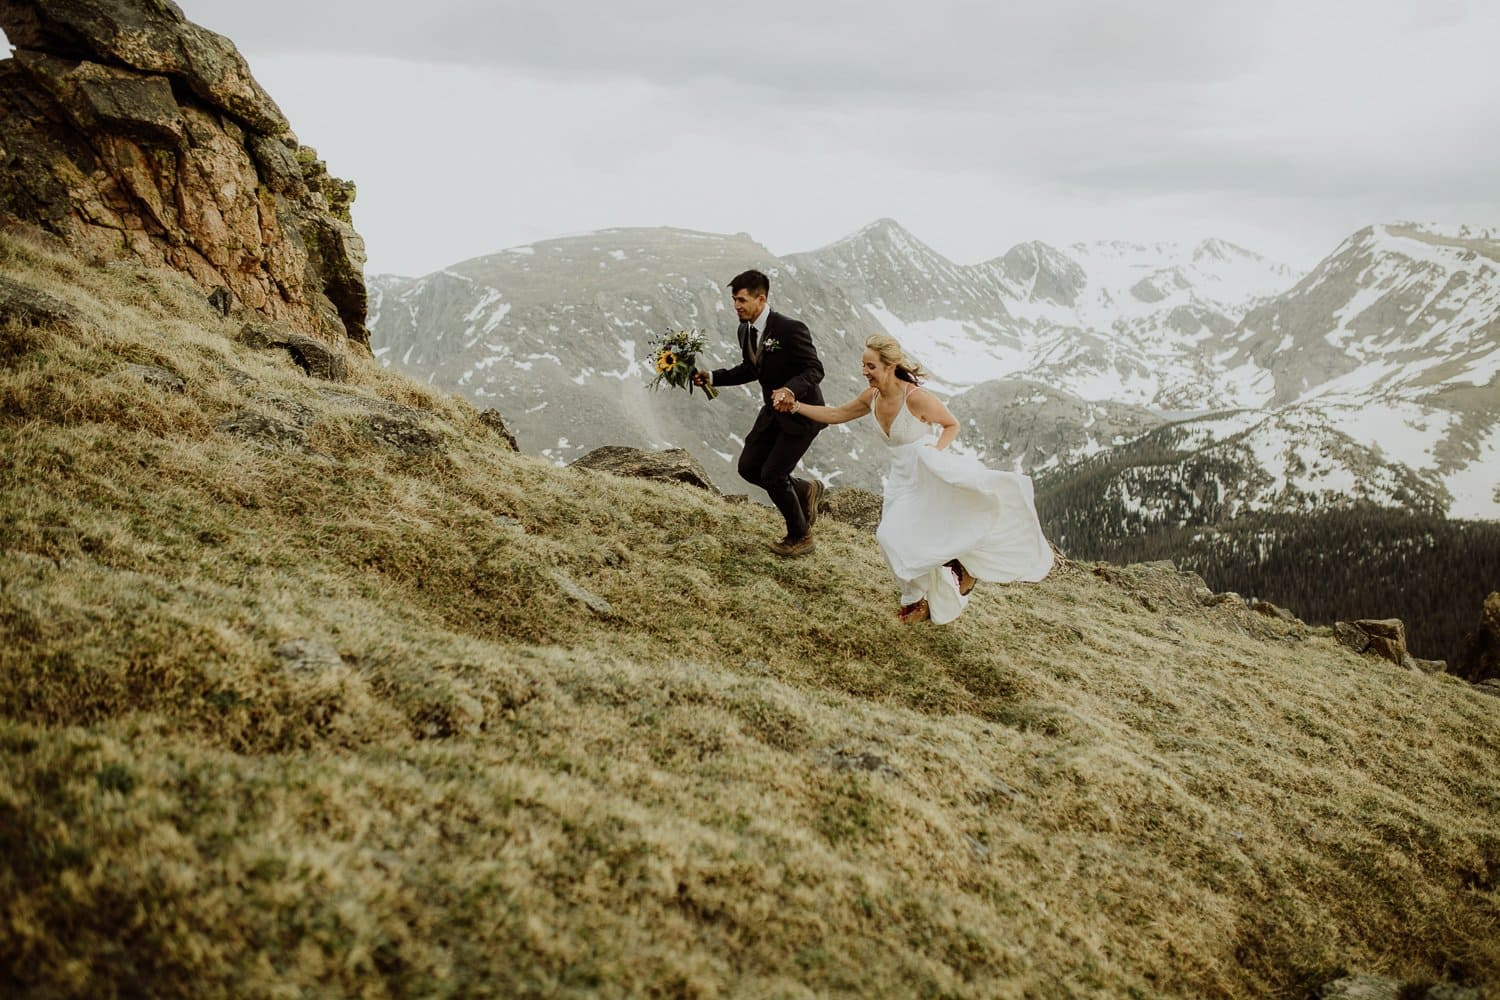 ROCKY MOUNTAIN ADVENTURE ELOPEMENT|ADVENTURE WEDDING PHOTOGRAPHER |3M CURVE CEREMONY ELOPEMENT|TRAIL RIDGE ROAD ADVENTURE | PEDRO + KIRSTEN